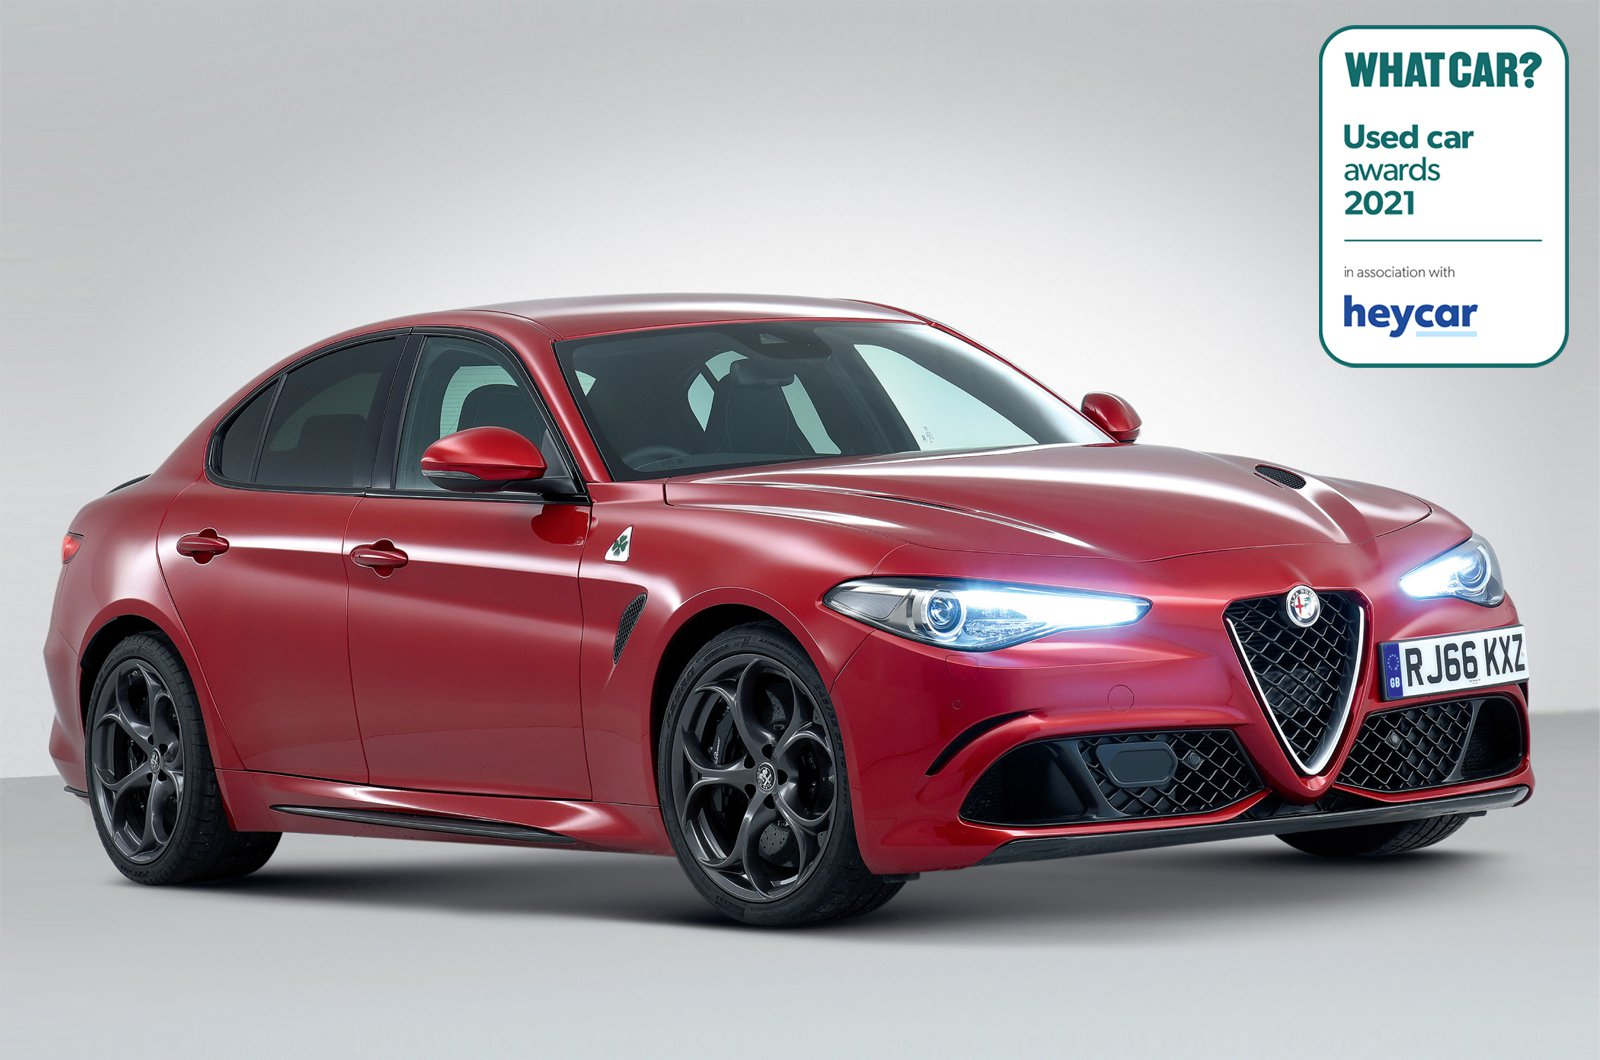 Used Car Awards 2021 - Alfa Romeo Giulia Quadrifoglio